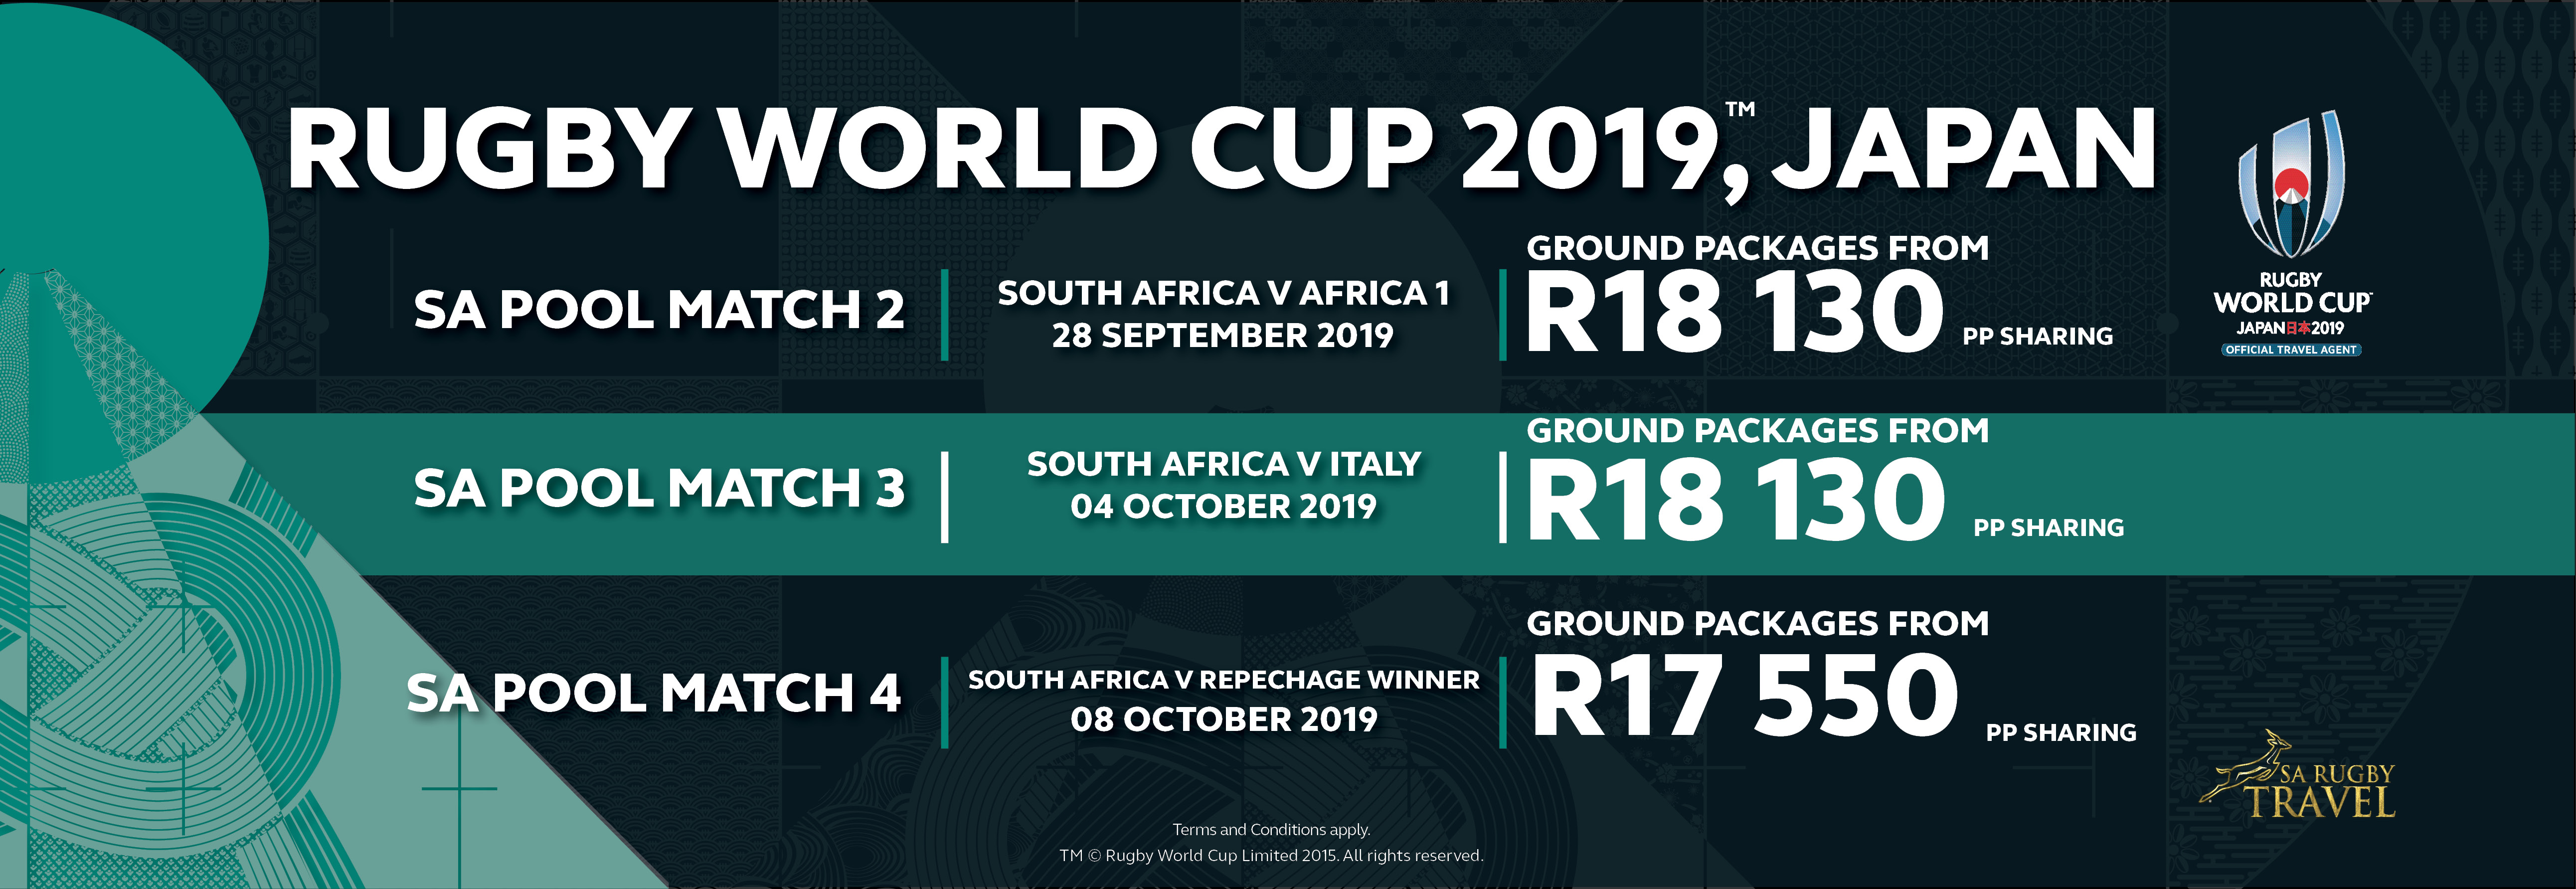 Rugby World Cup 2019 - Pool Matches